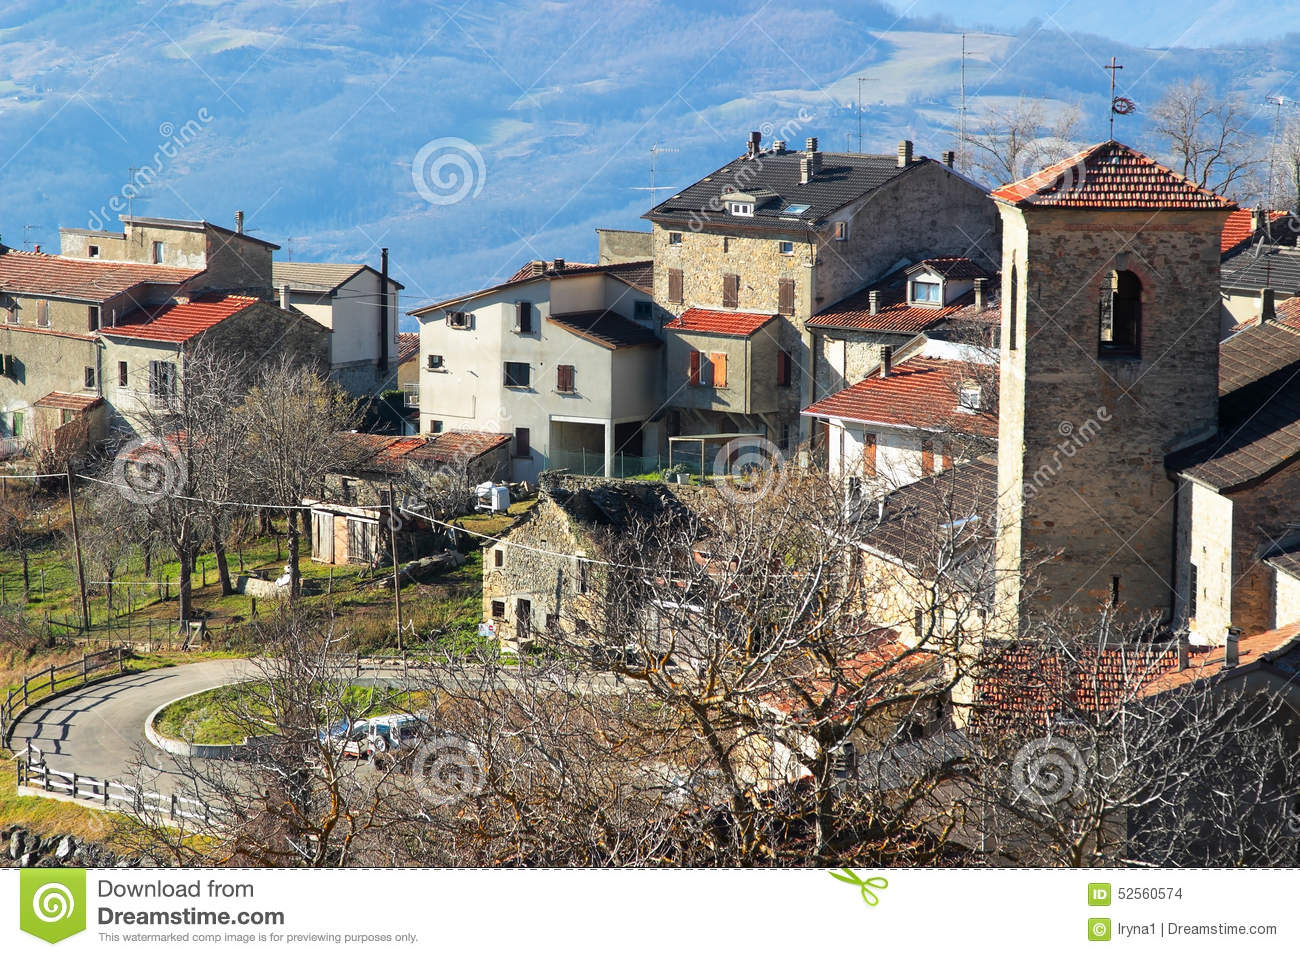 Small Old Village In The Apennines Mountains Stock Photo.